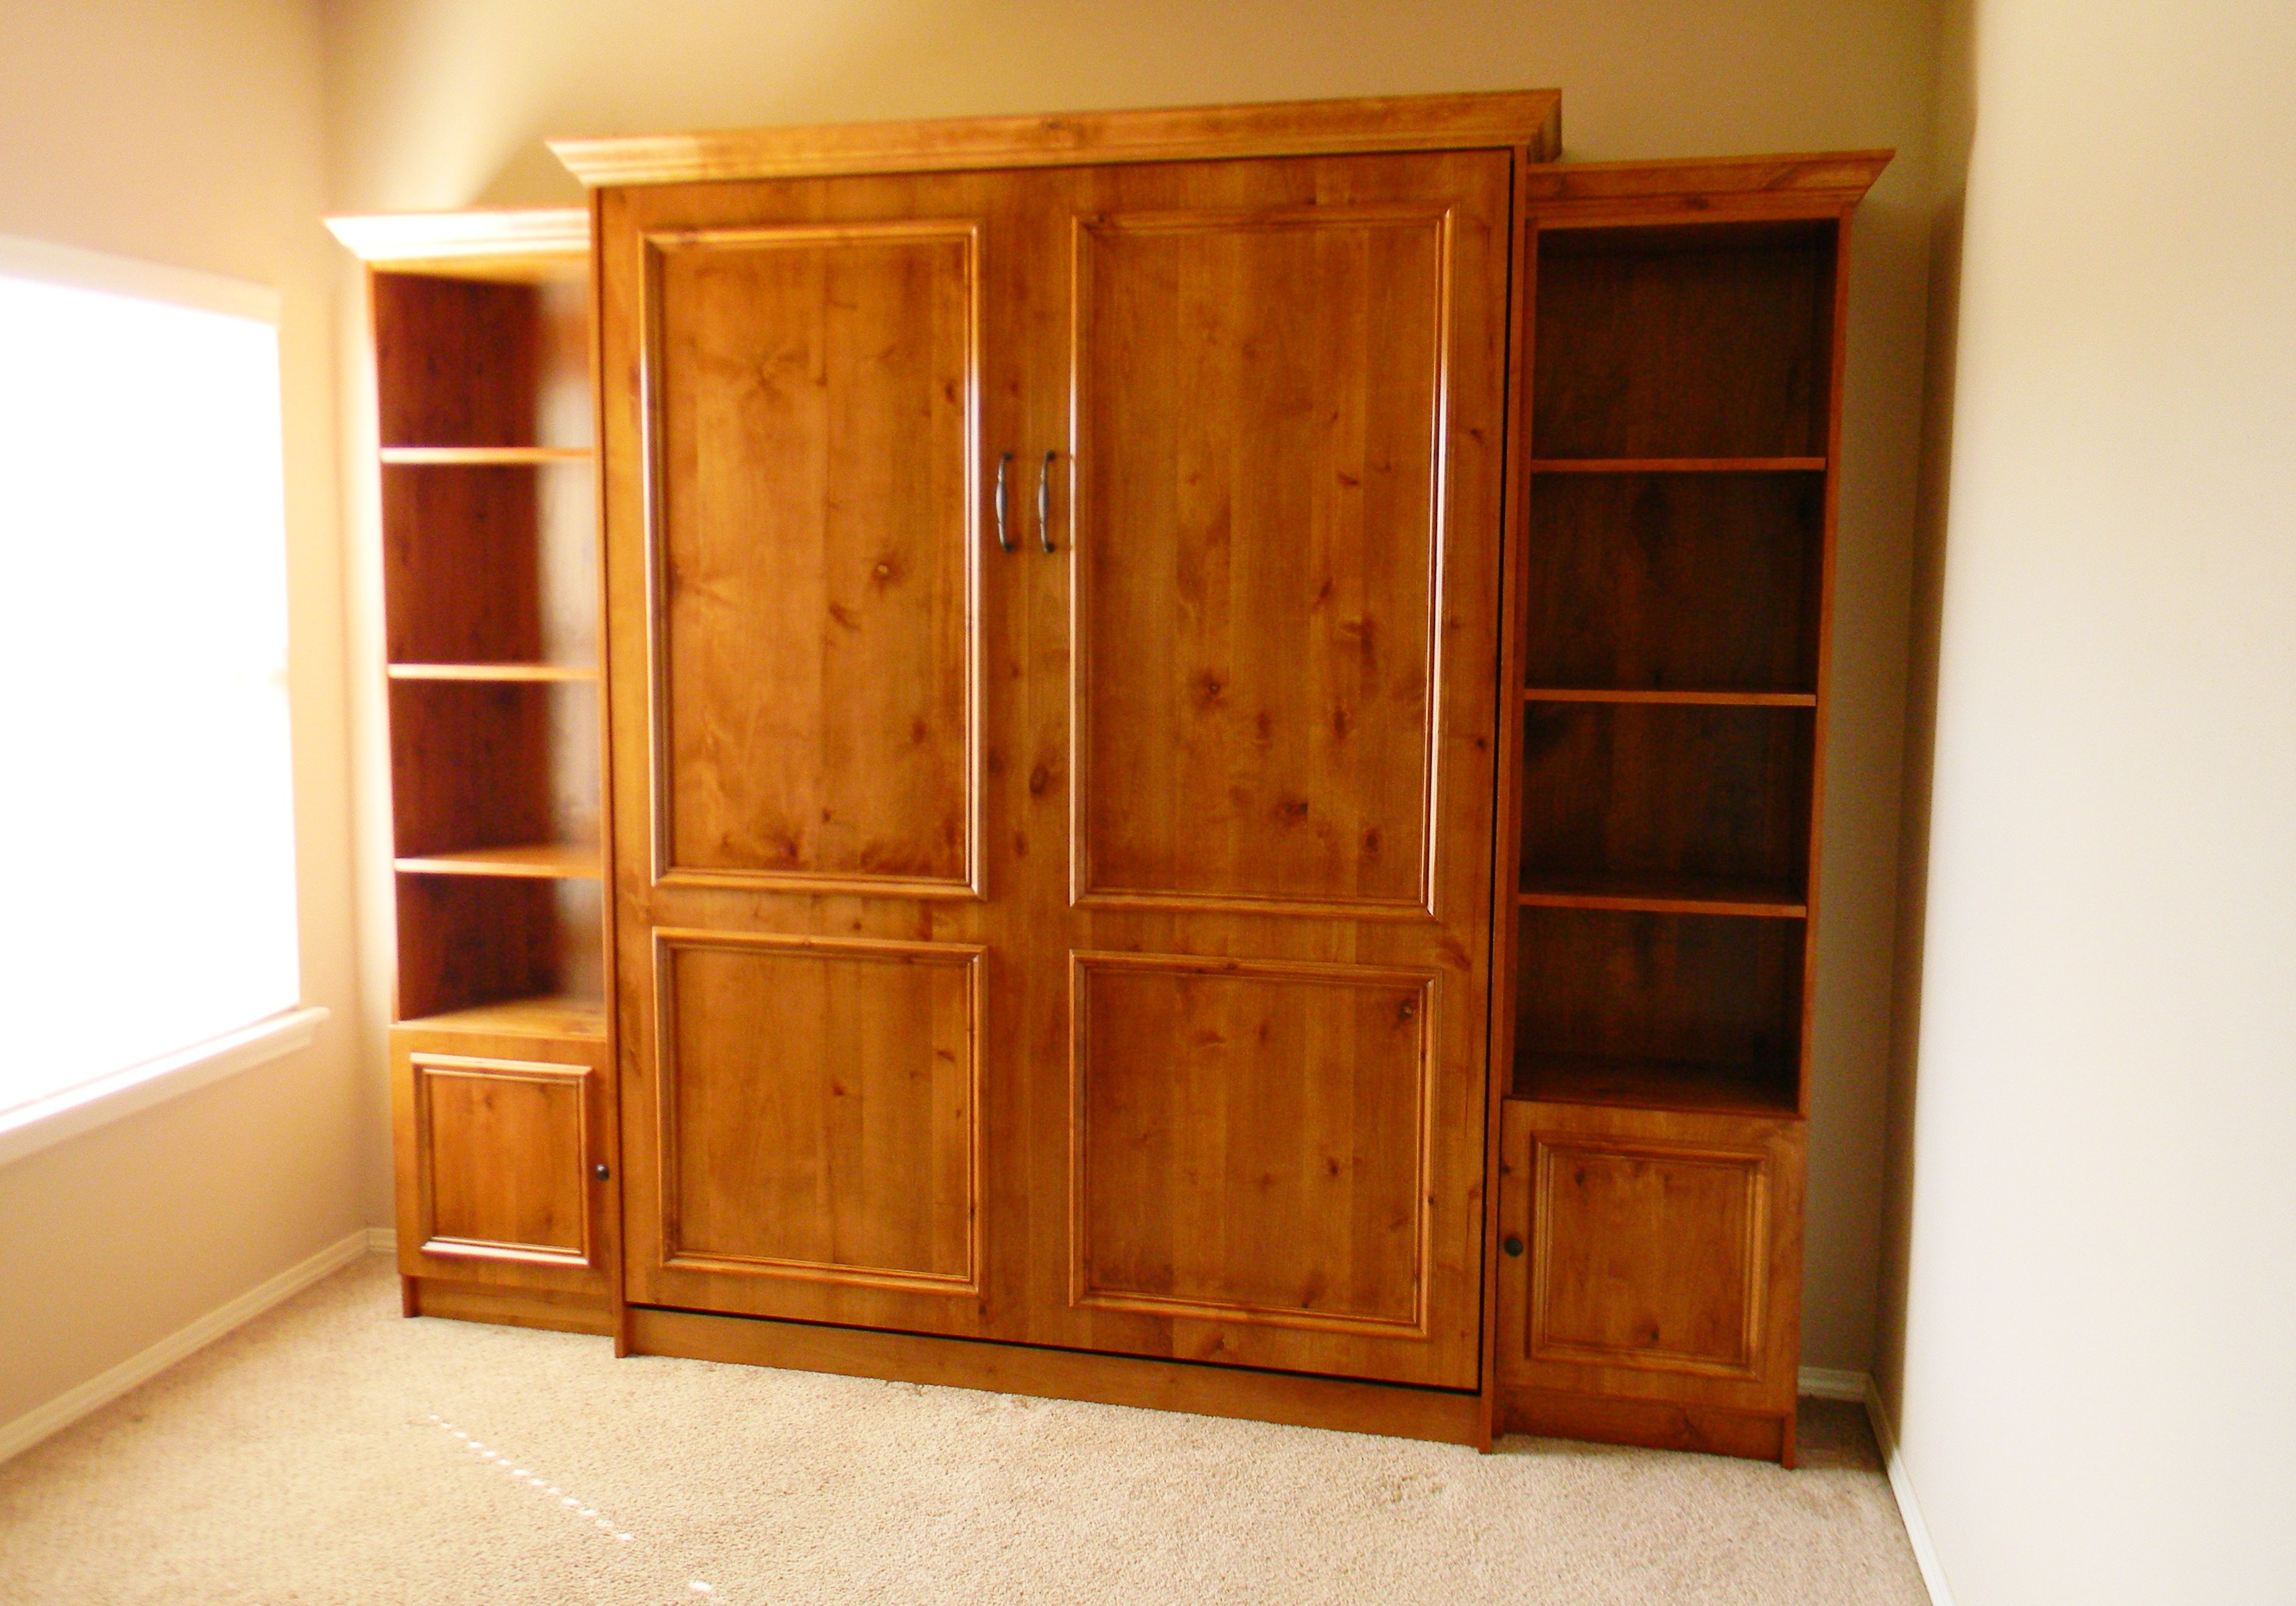 Utica Murphy Bed by Murphy Wallbed USA Small space solution ...